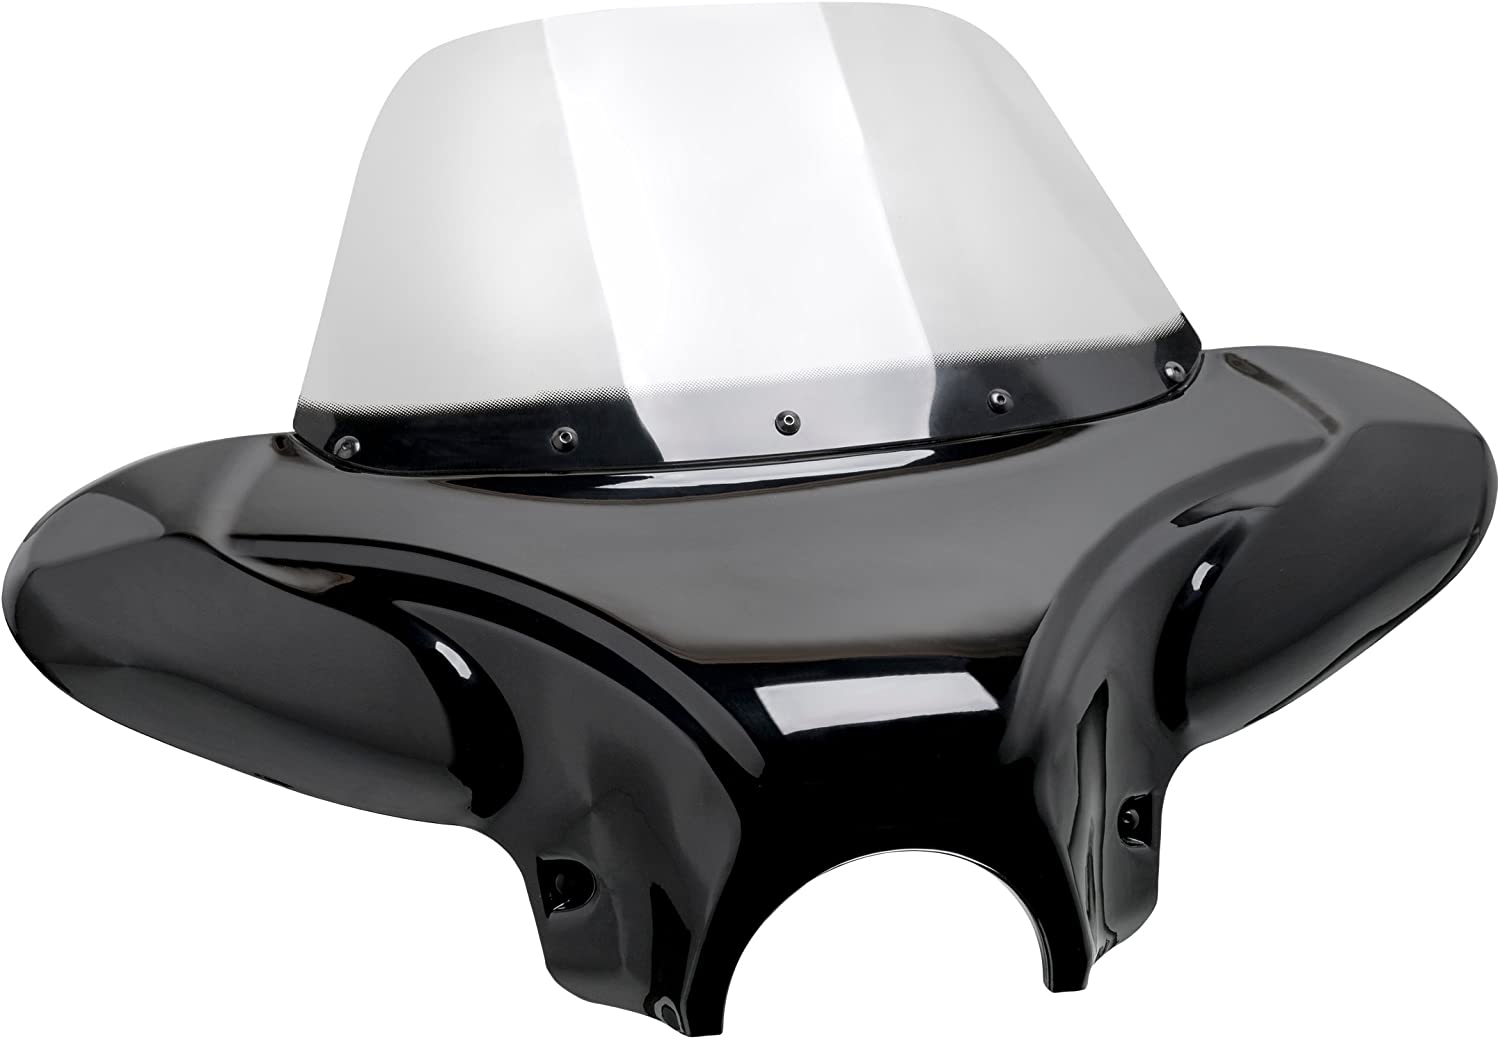 VN900B Customaccess EH0003H Windshield Batwing for VN 900 Classic 06-16